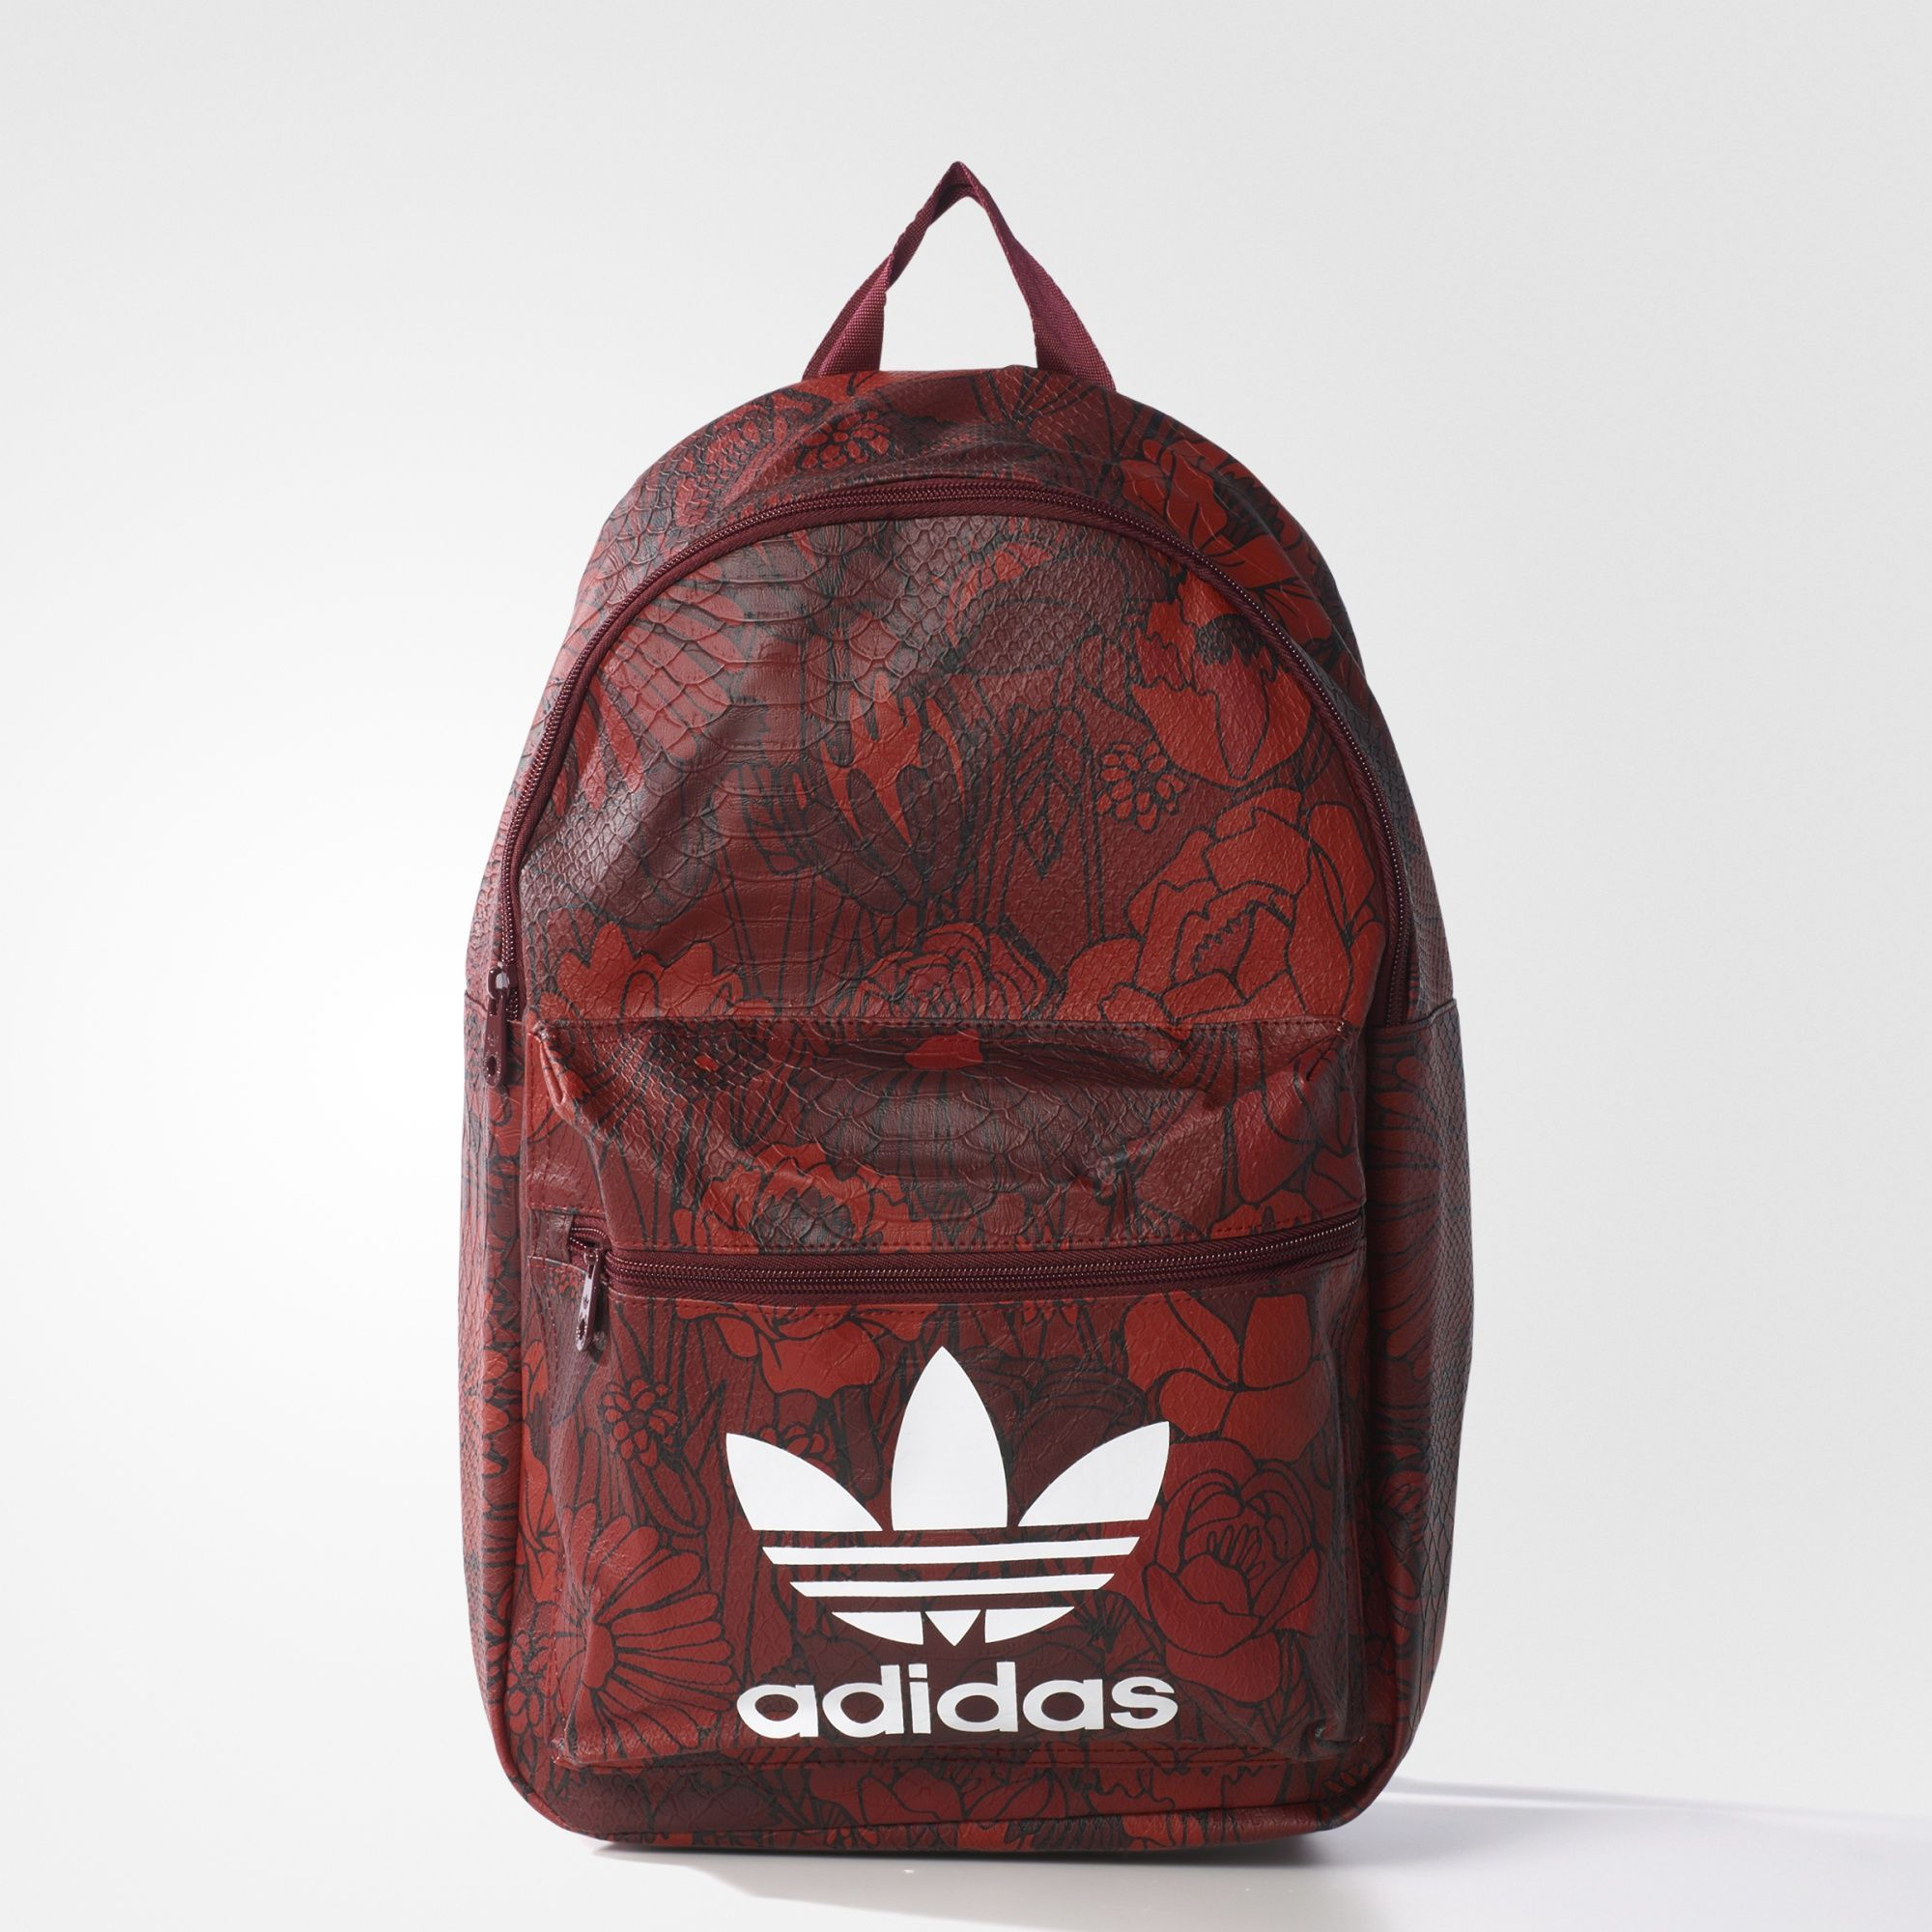 adidas originals backpack leather